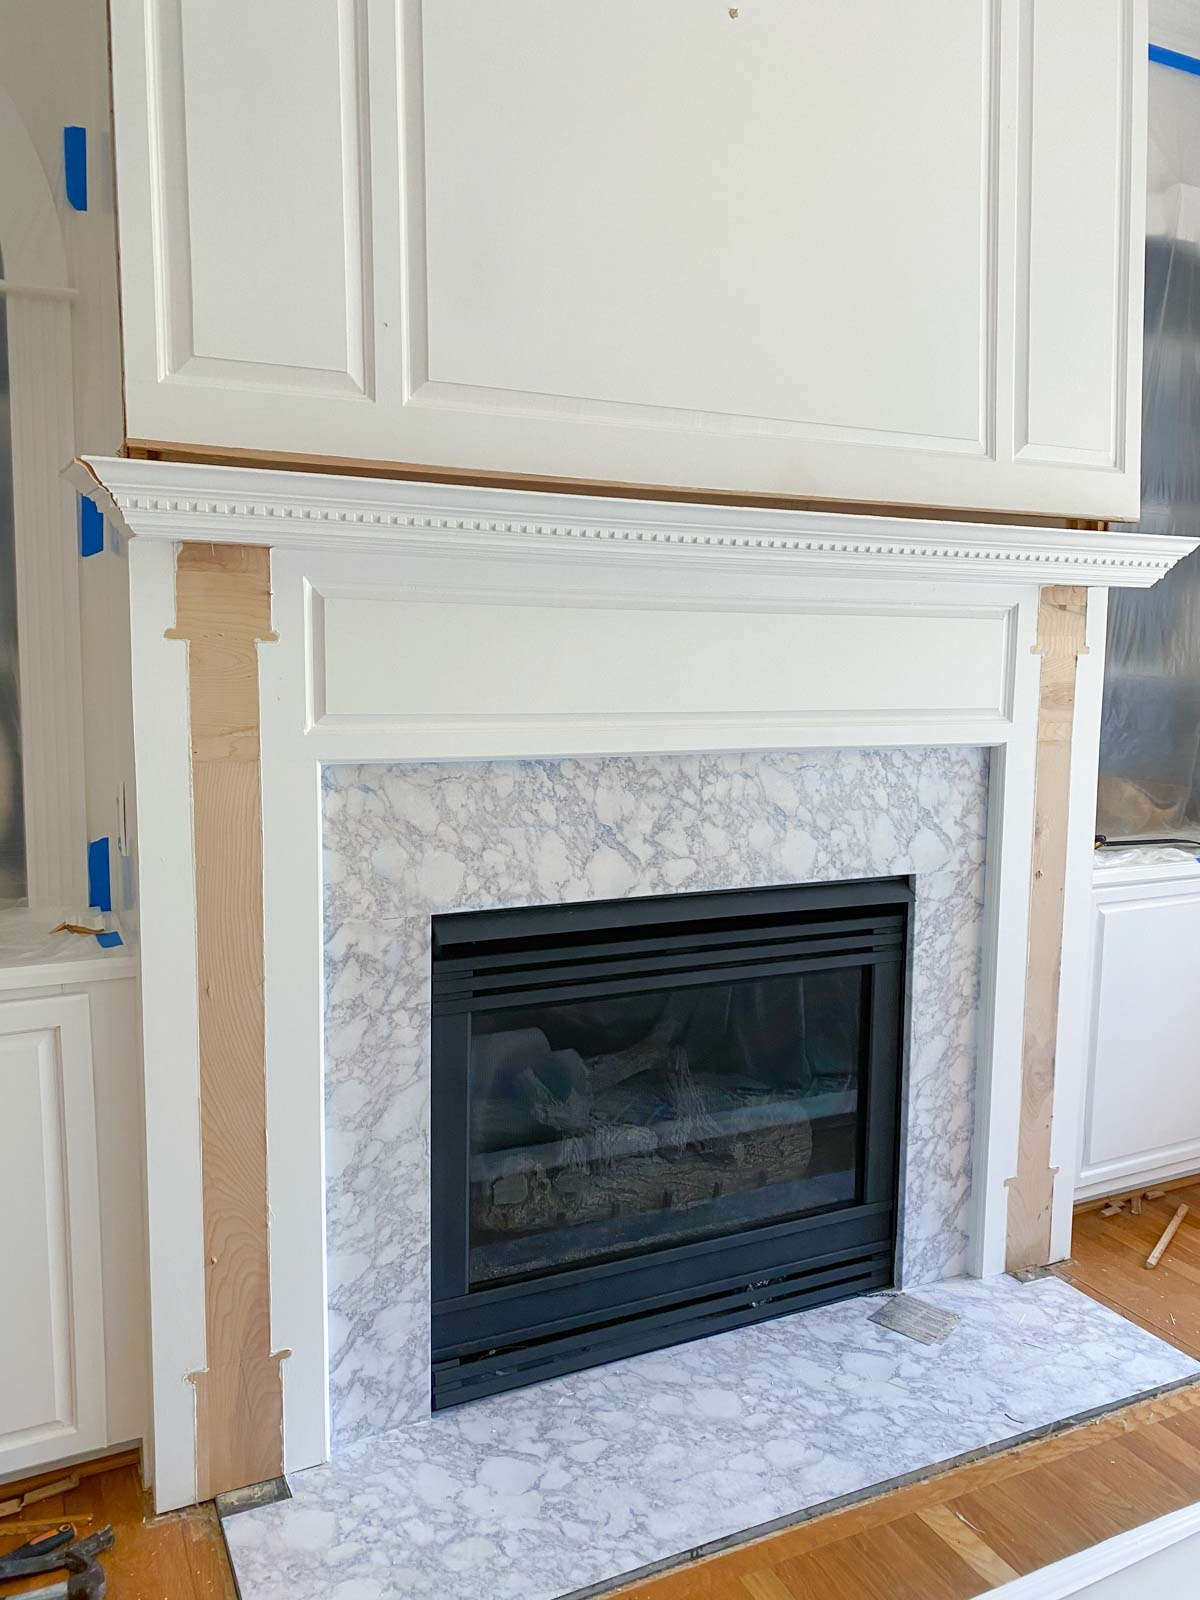 Remodeling our fireplace